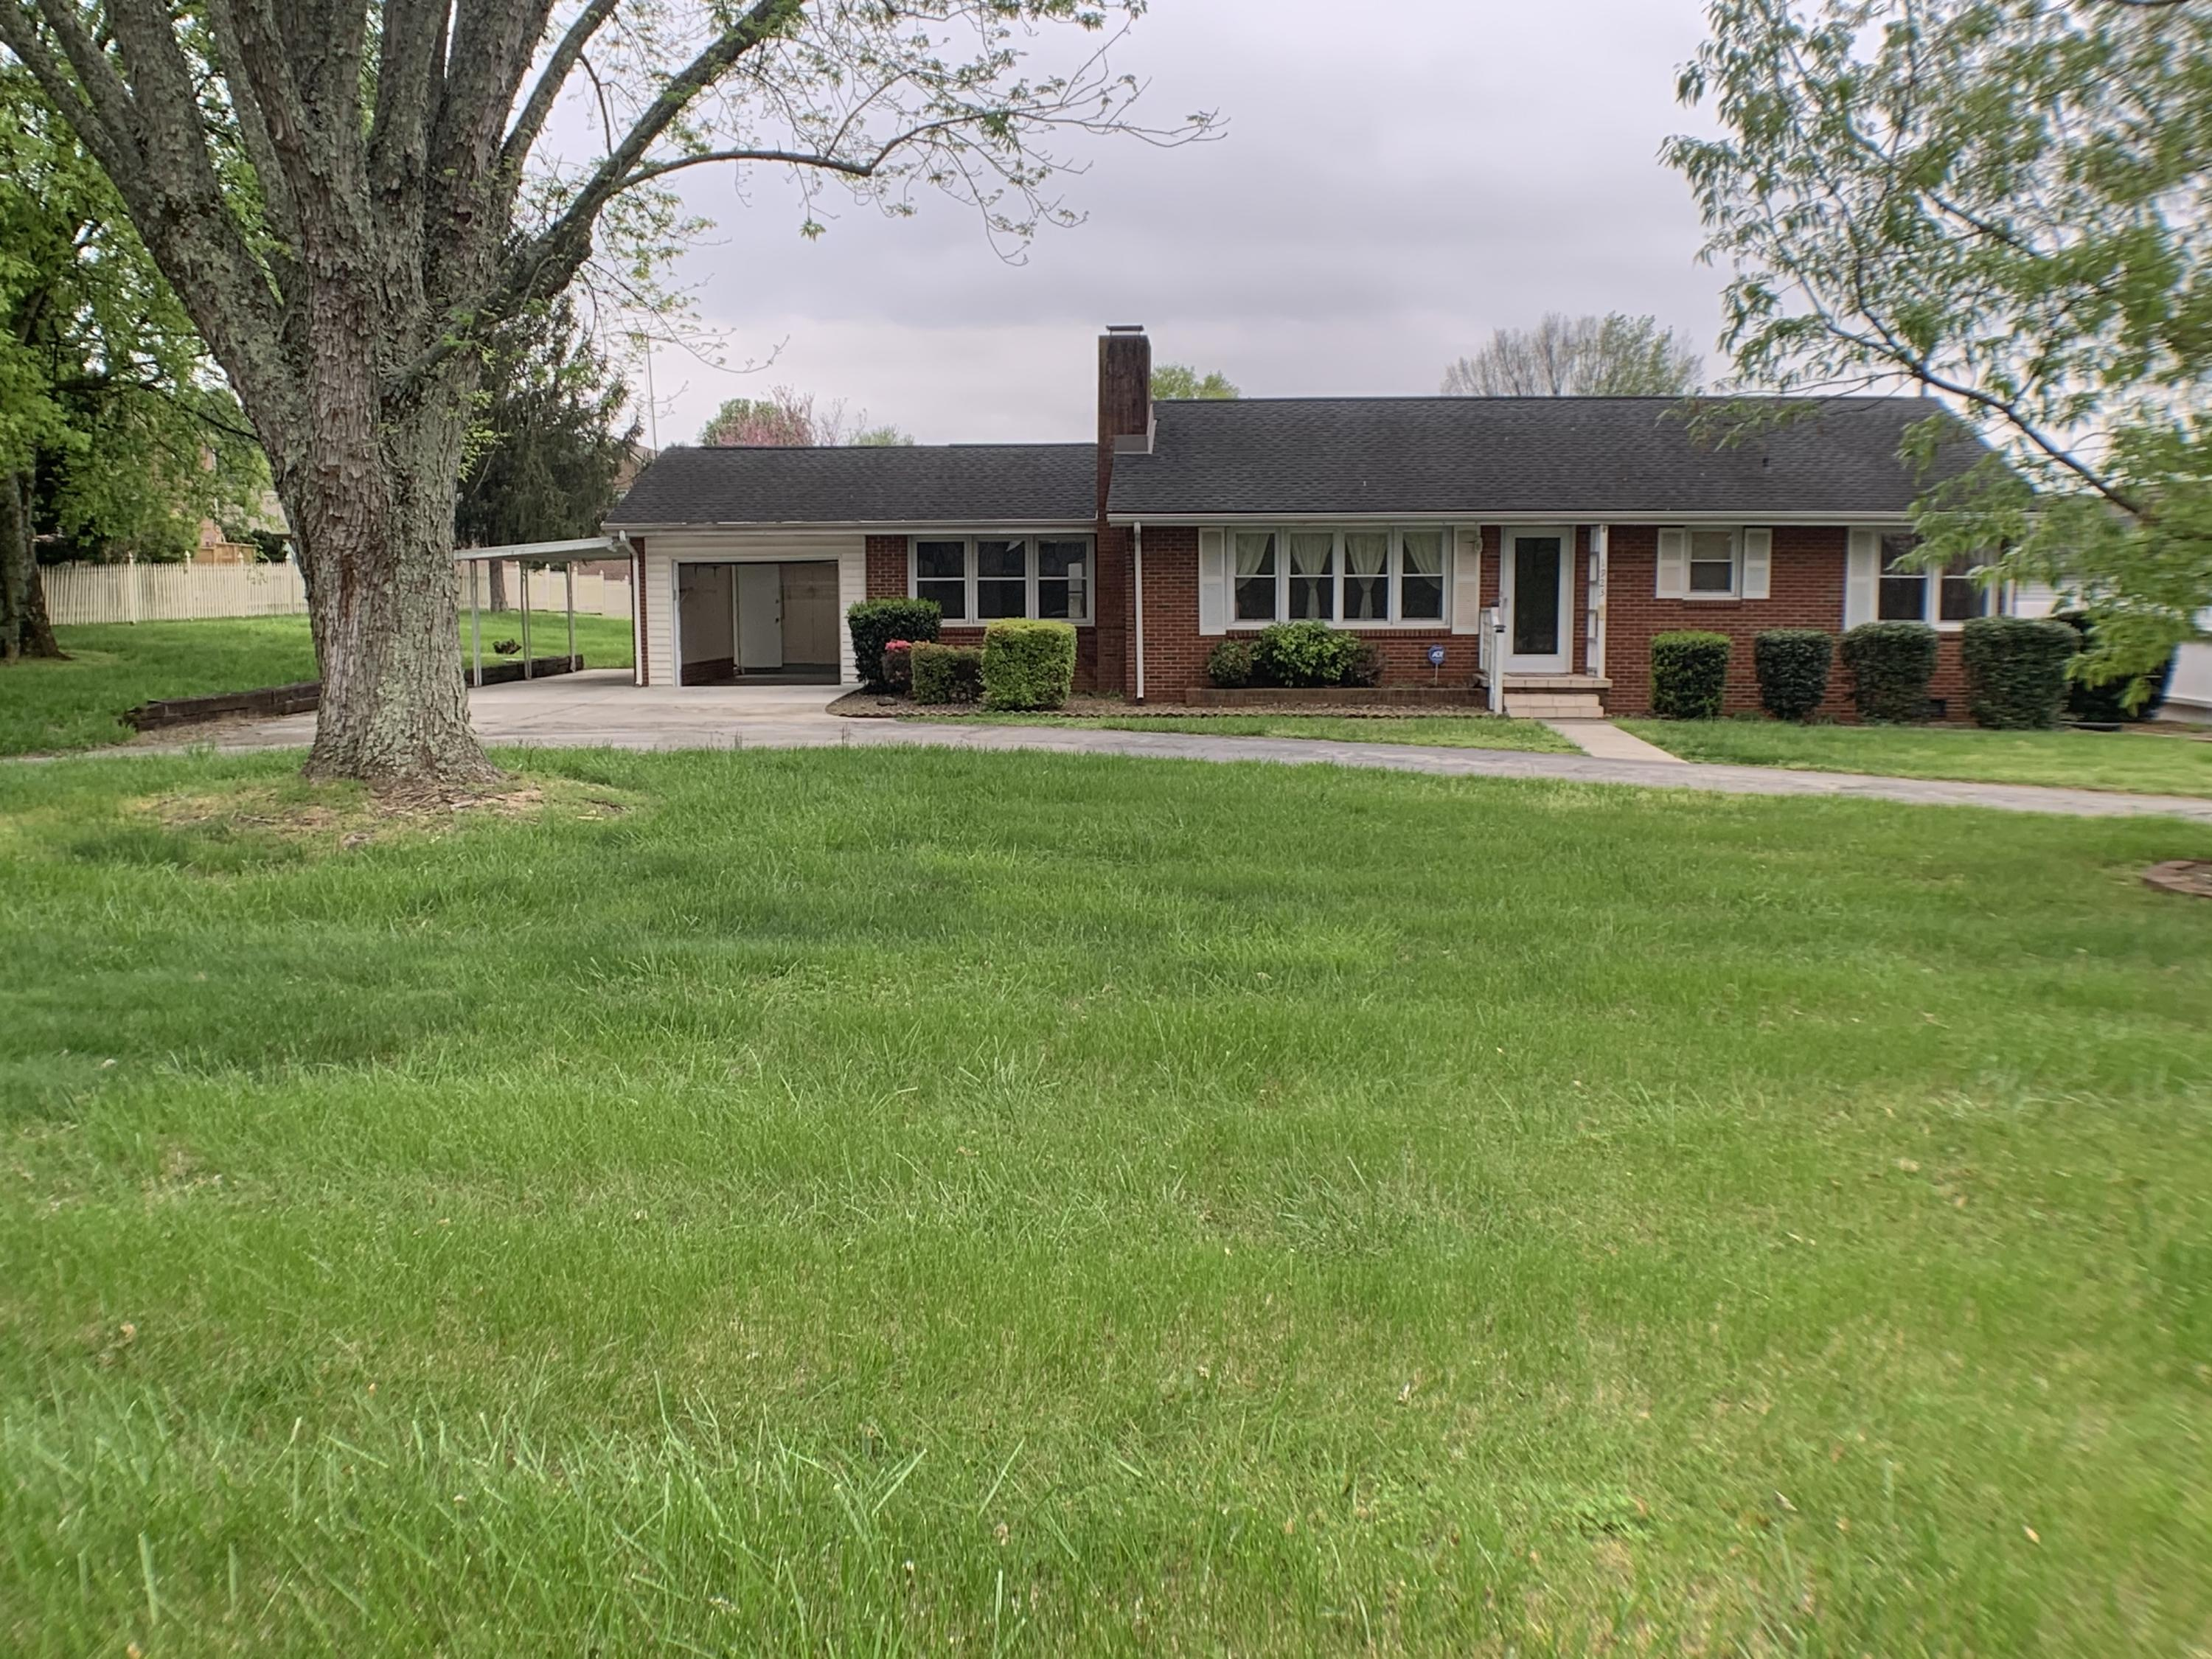 1923/1925 Cochran, Maryville, Tennessee, United States 37803, 3 Bedrooms Bedrooms, ,2 BathroomsBathrooms,Single Family,For Sale,Cochran,1113487